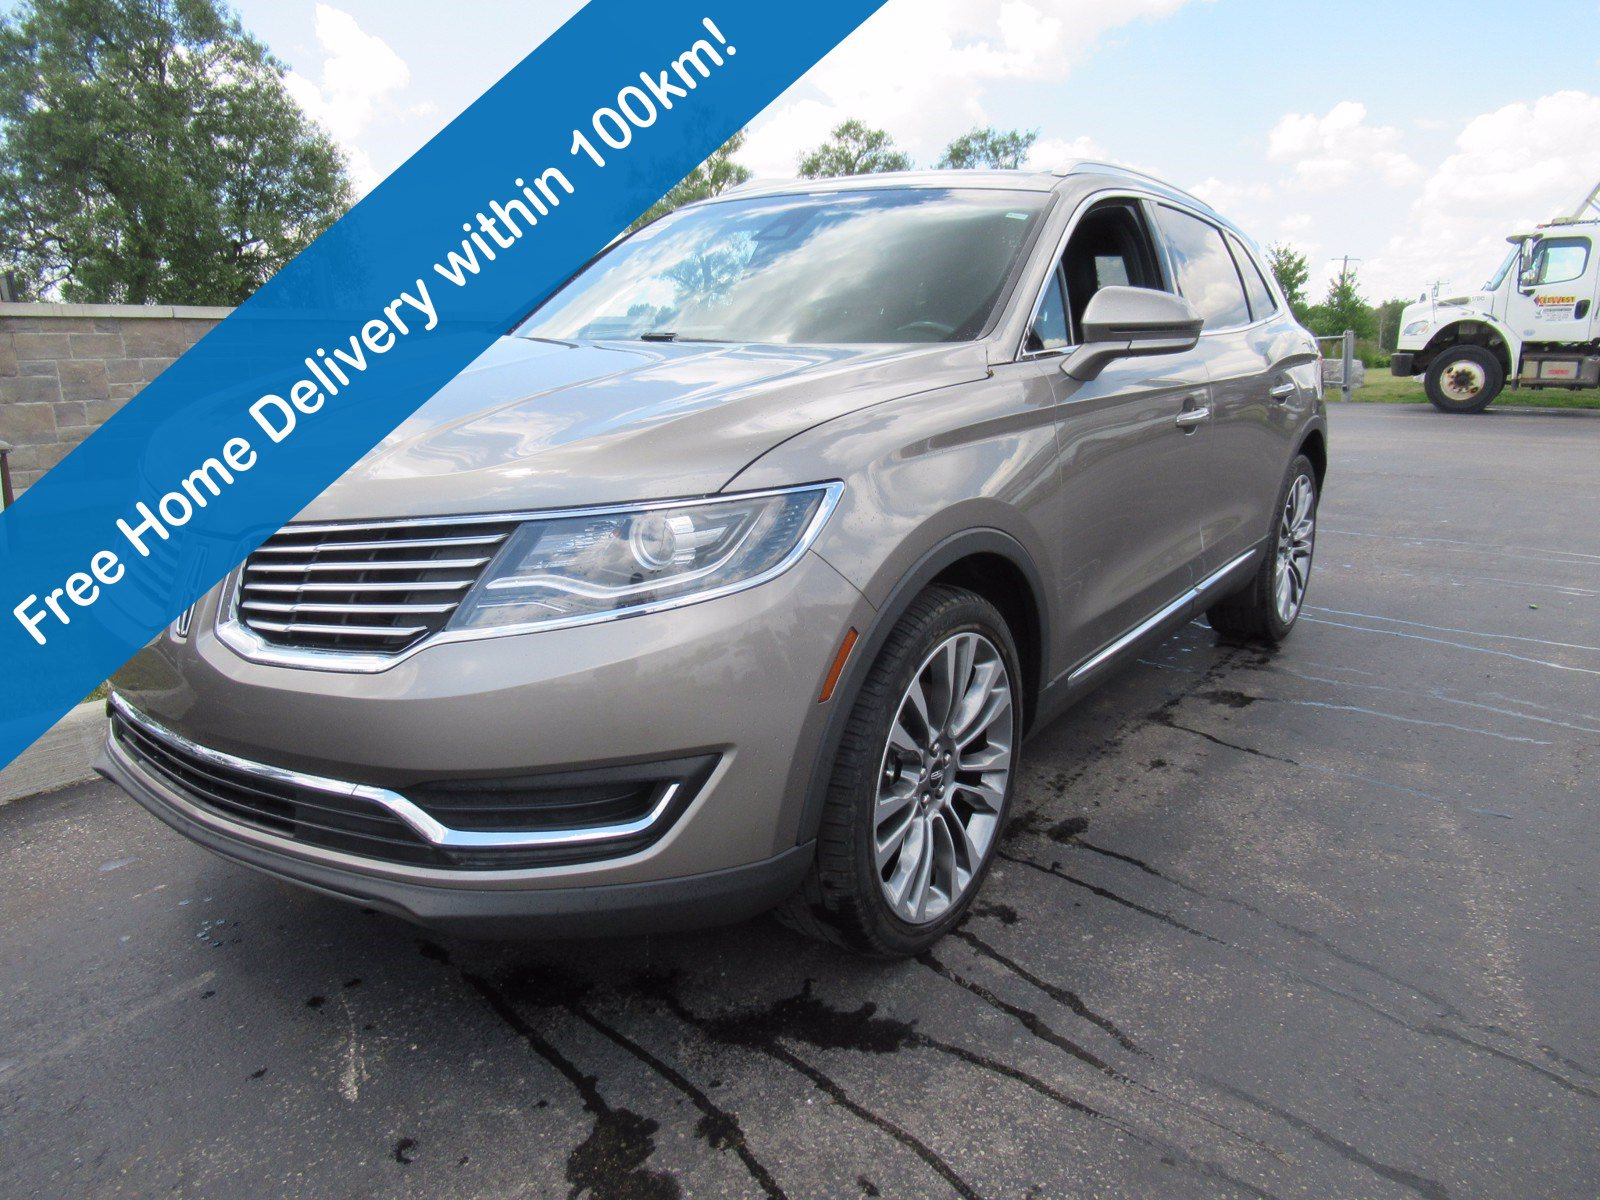 Certified Pre-Owned 2016 Lincoln MKX Reserve AWD 2.7L EcoBoost V6, Navigation, Sunroof, Leather, Heated Steering, Heated/Cooled Seat